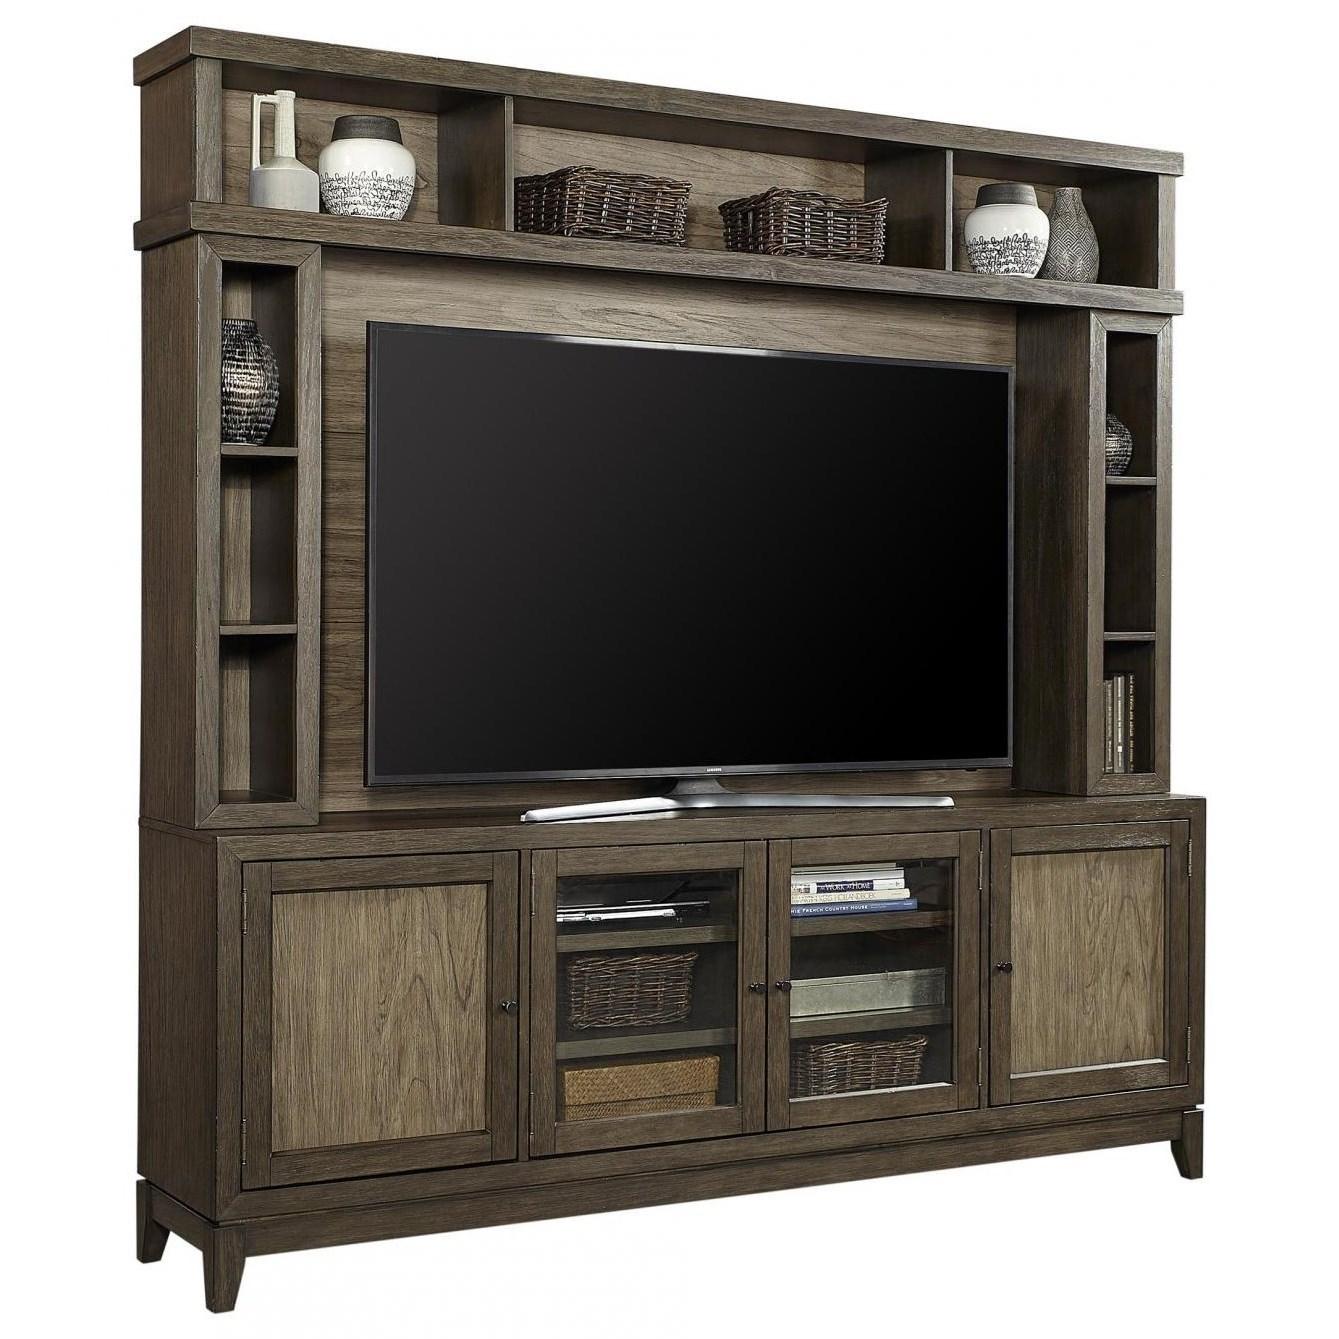 Westlake TV Stand and Hutch by Aspenhome at Walker's Furniture